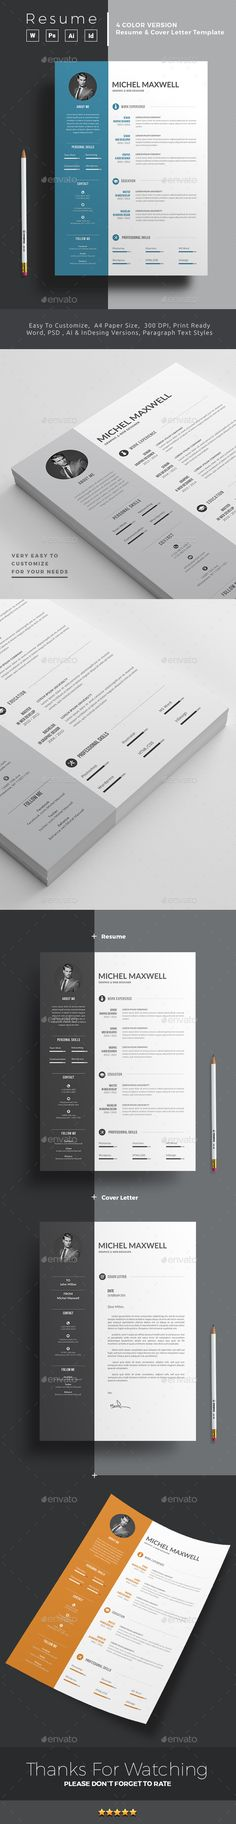 Resume Stationery, Ai illustrator and Print templates - subway resume